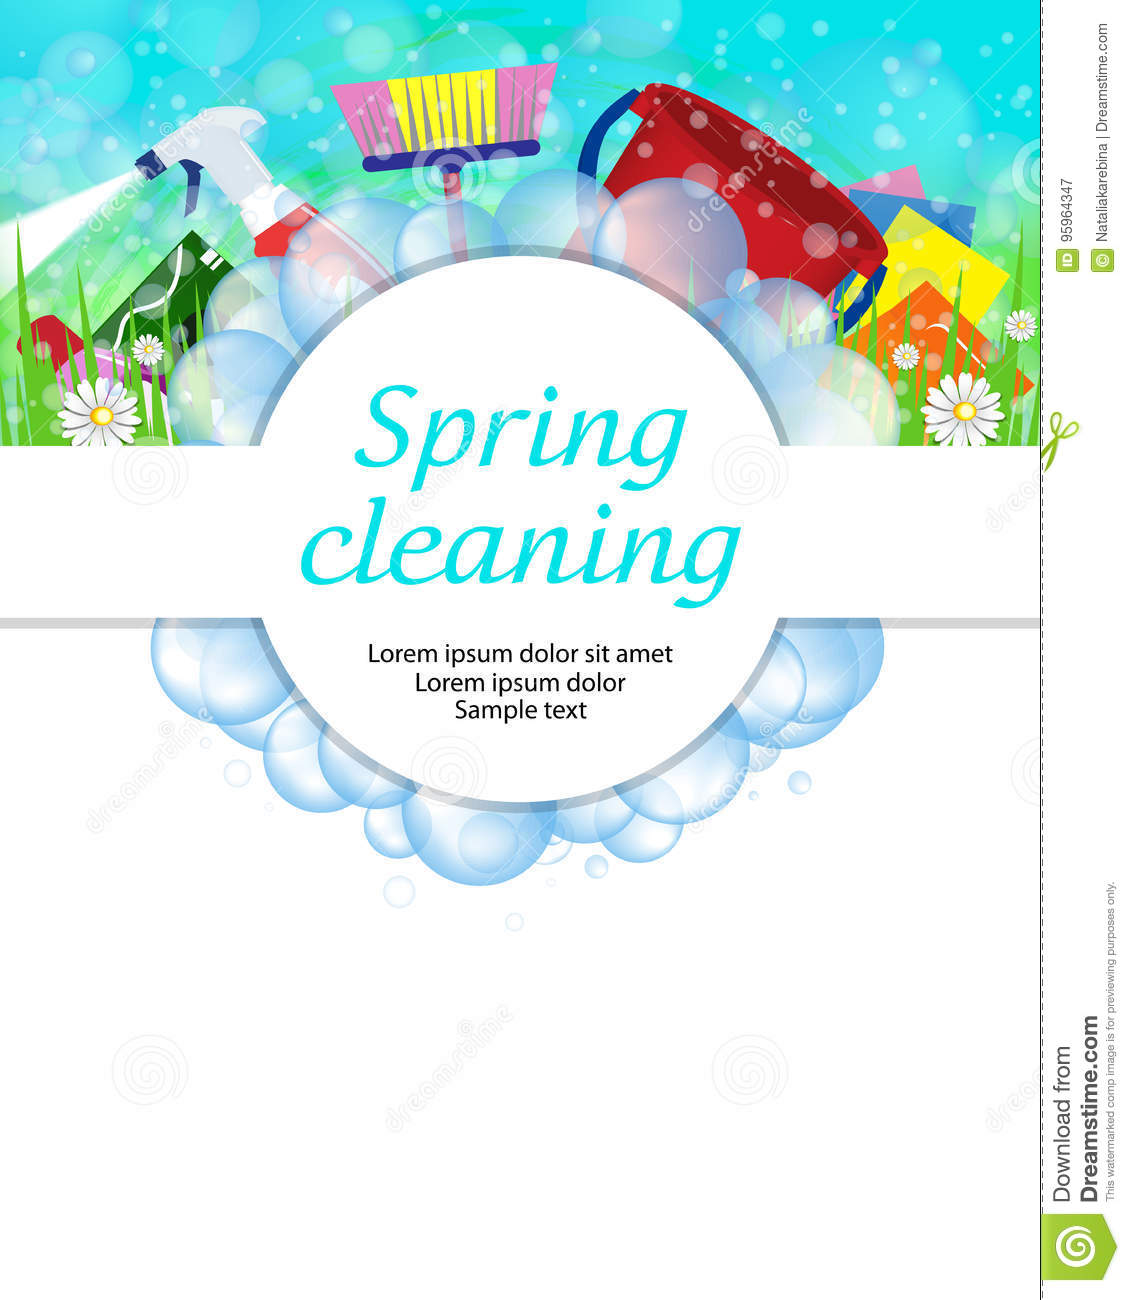 Spring cleaning service concept. Tools for cleanliness and disinfection. Soap bubbles frame. Vector